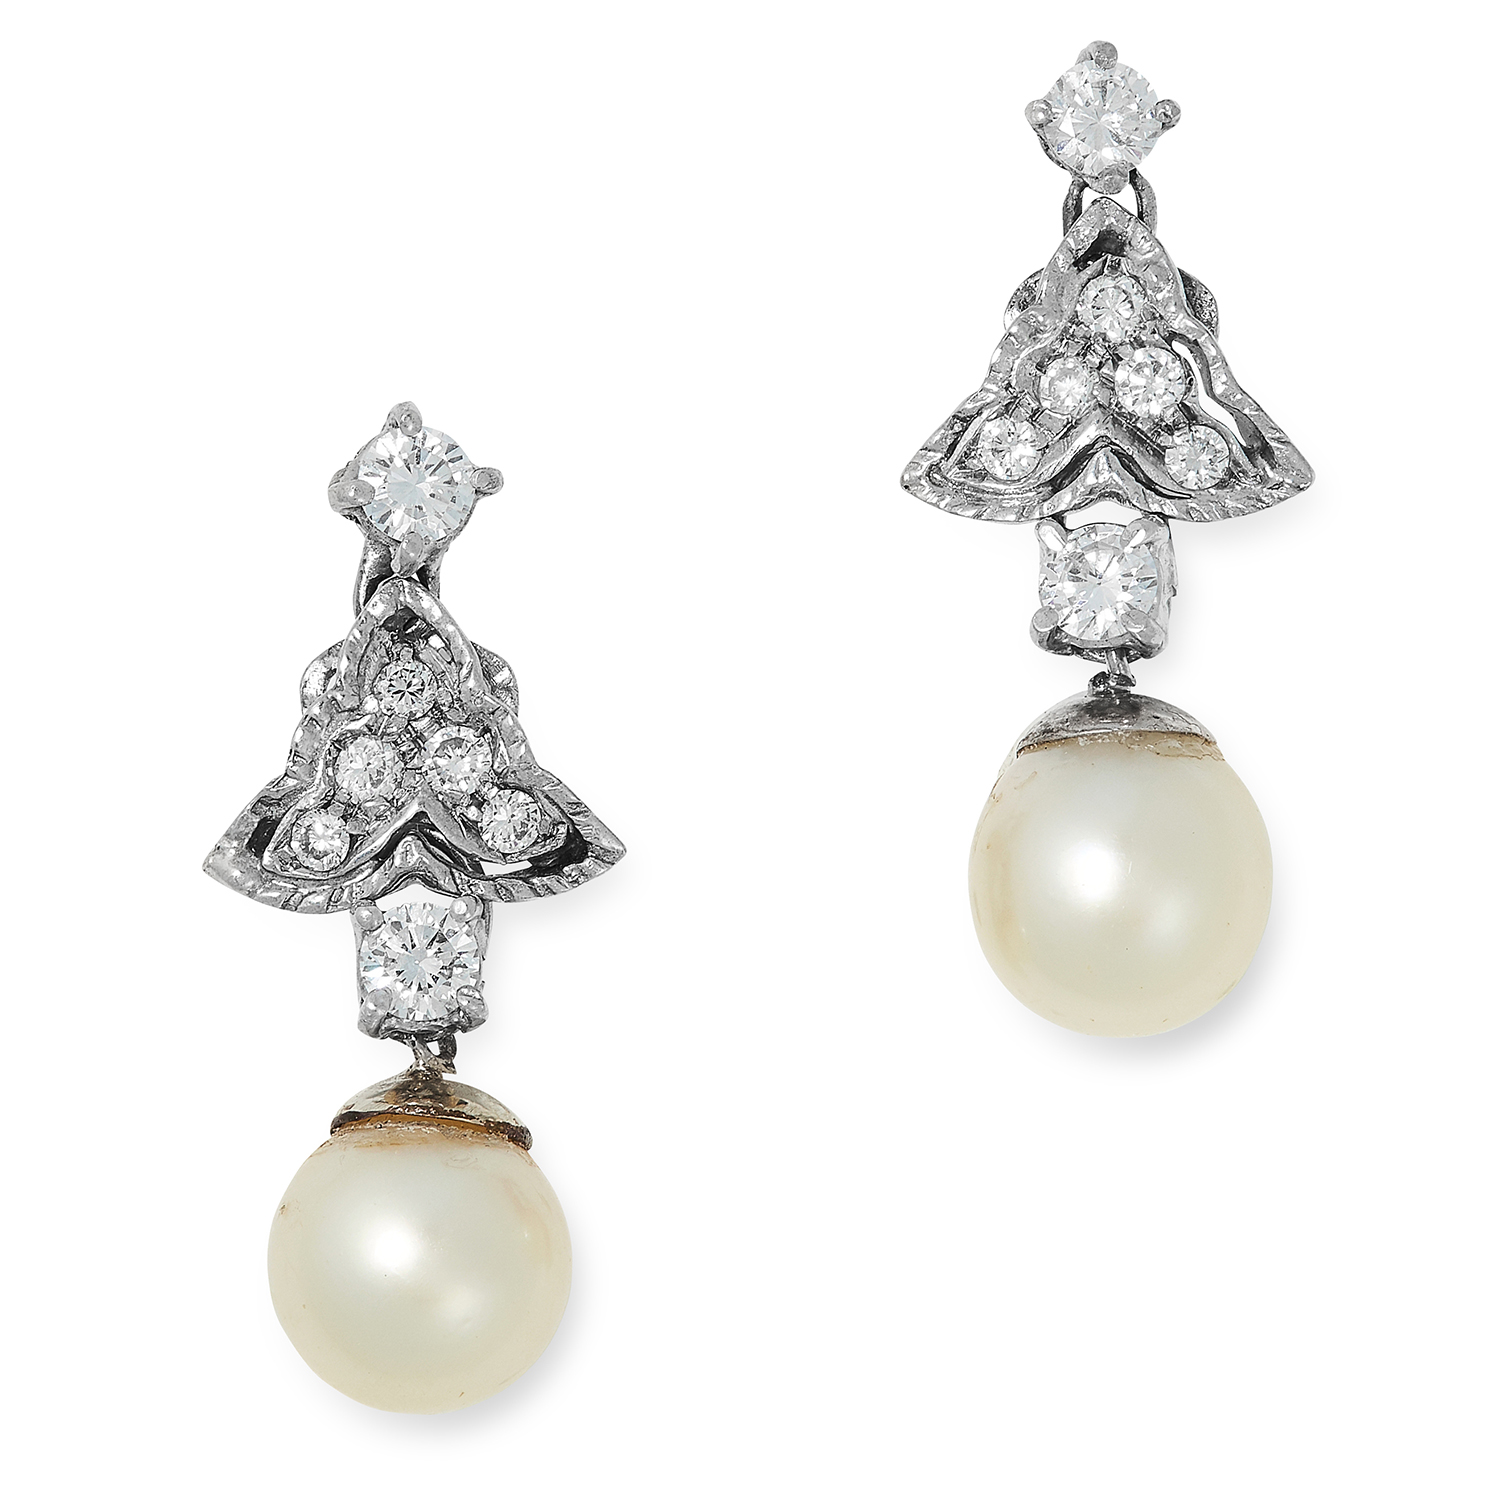 Los 11 - PEARL AND DIAMOND DROP EARRINGS each set with round cut diamonds and suspending a pearl drop, 2.5cm,